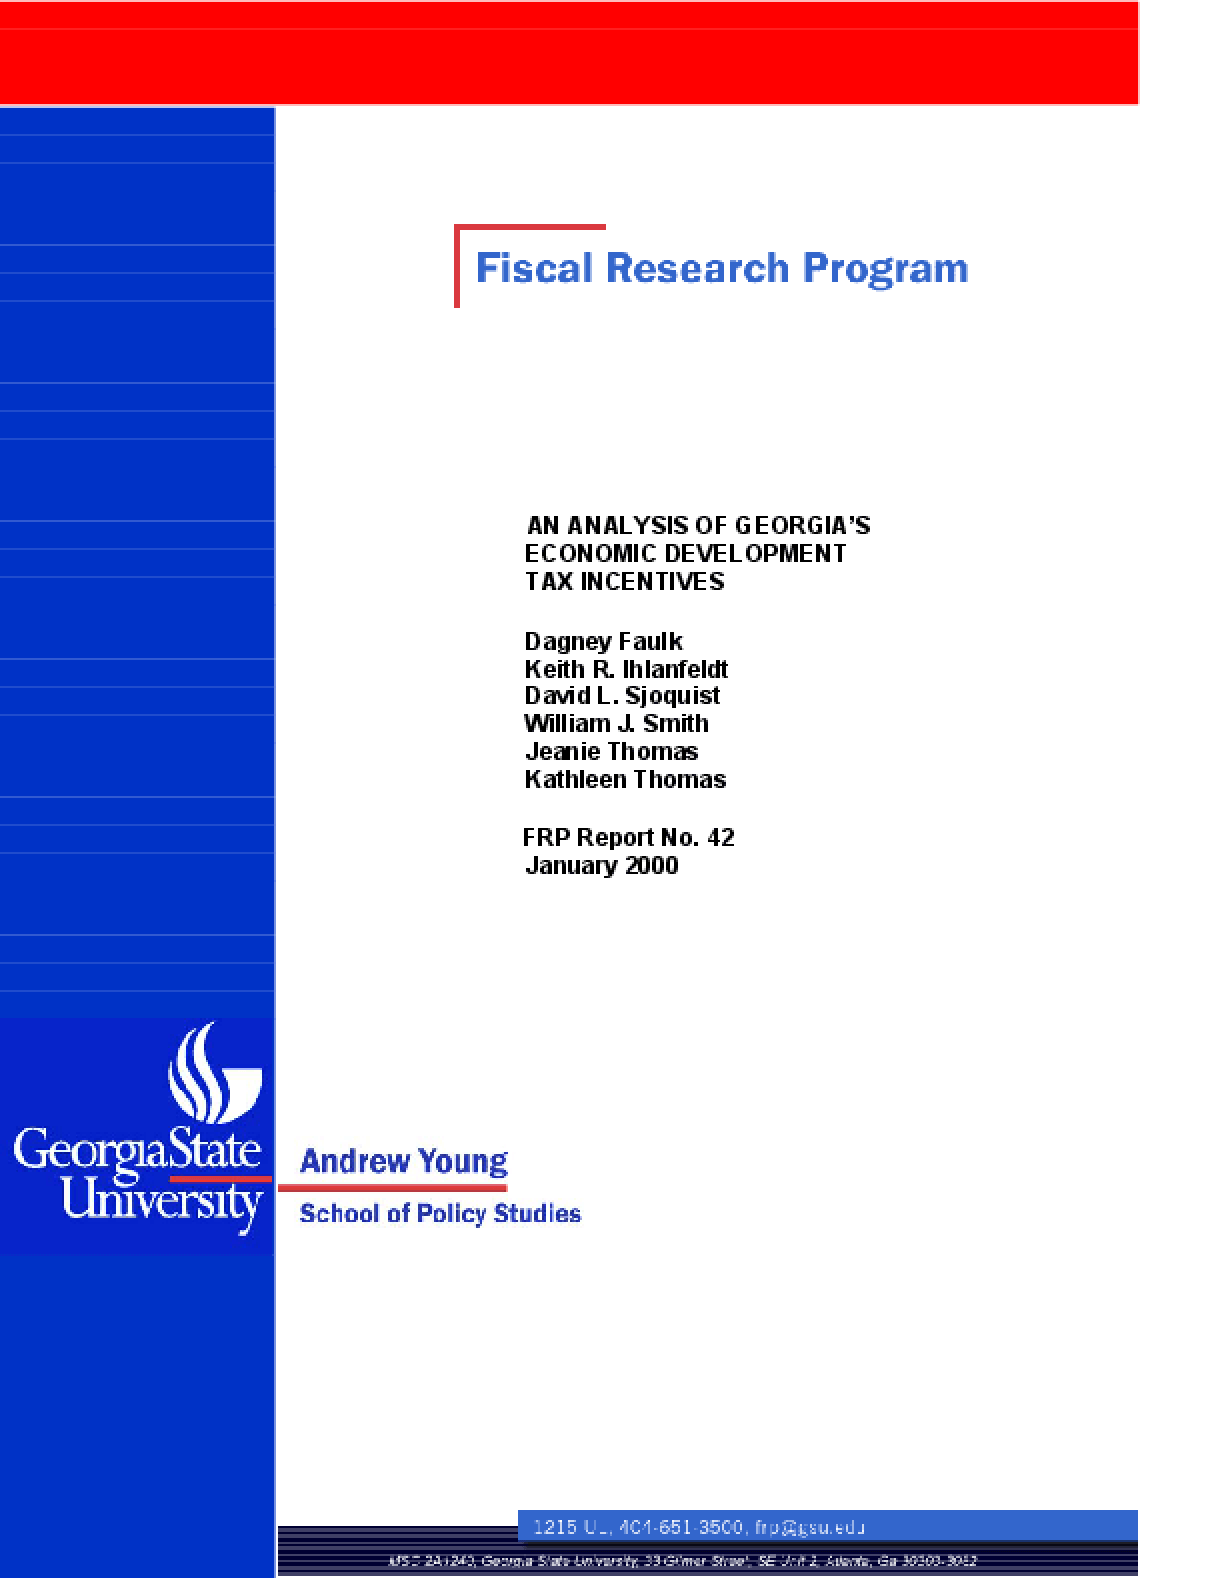 An Analysis of Georgia's Economic Development Tax Credit Incentives